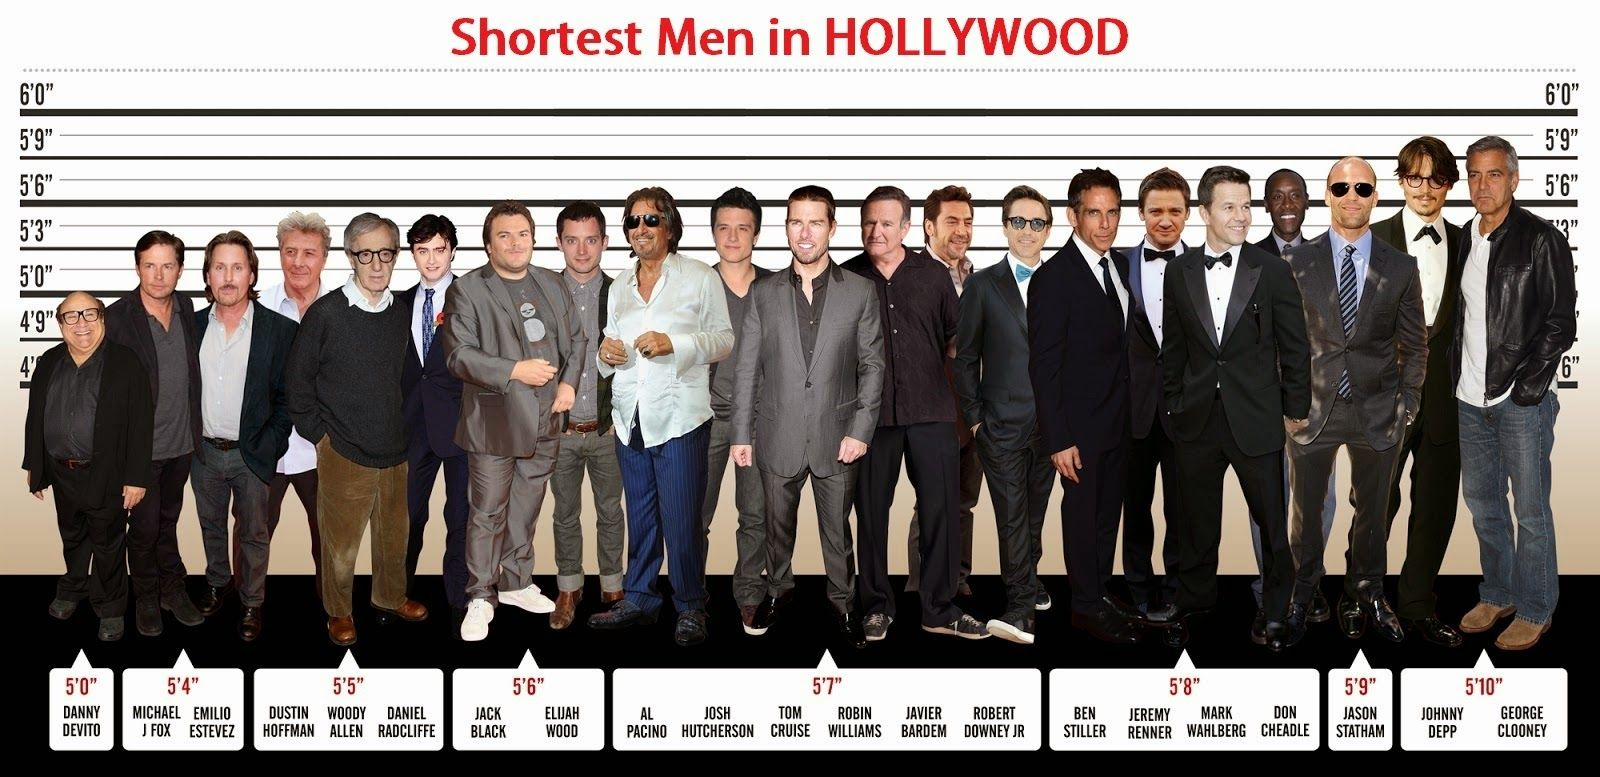 Celebrity Heights How Tall Are Celebrities Heights Of Celebrities Shortest Men In Hollywood Source Heightceleb Actors Height Celebrities Male Hollywood